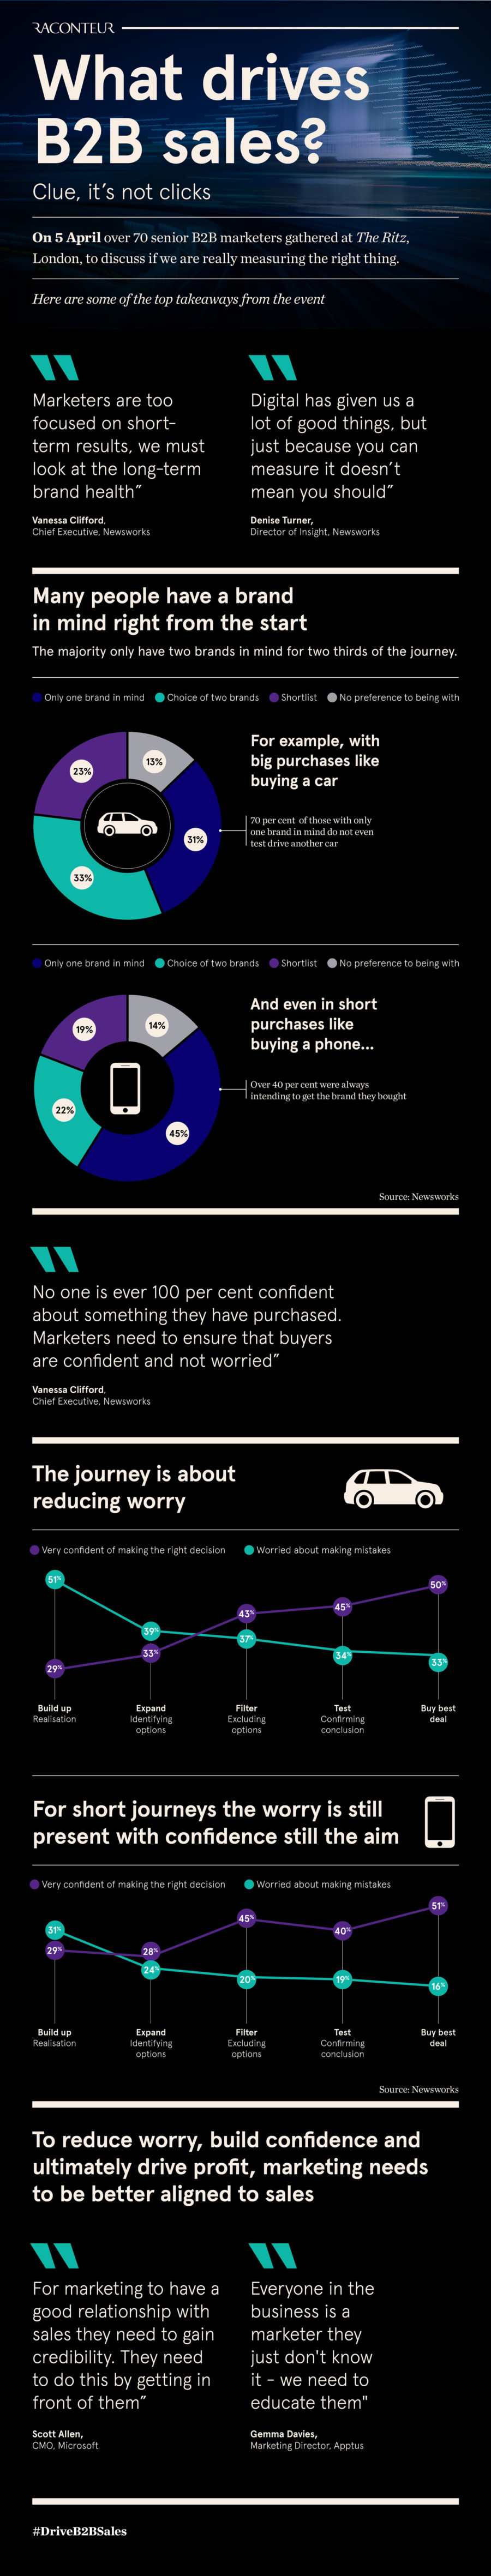 What drives B2B sales graphic